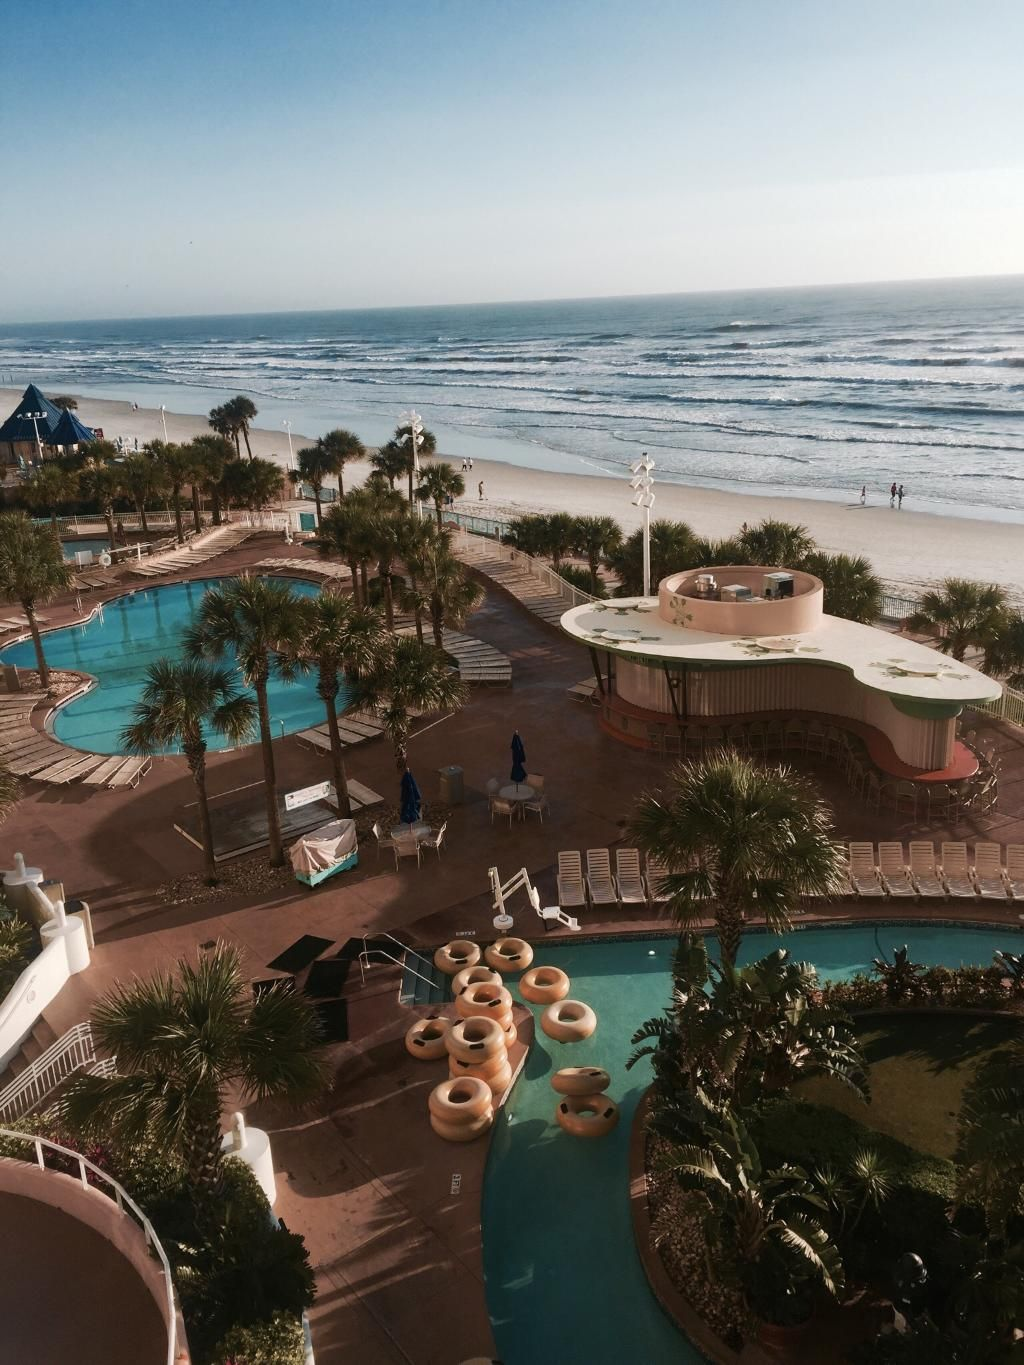 Wyndham Ocean Walk Daytona Beach Fl 2016 Hotel Reviews Tripadvisor